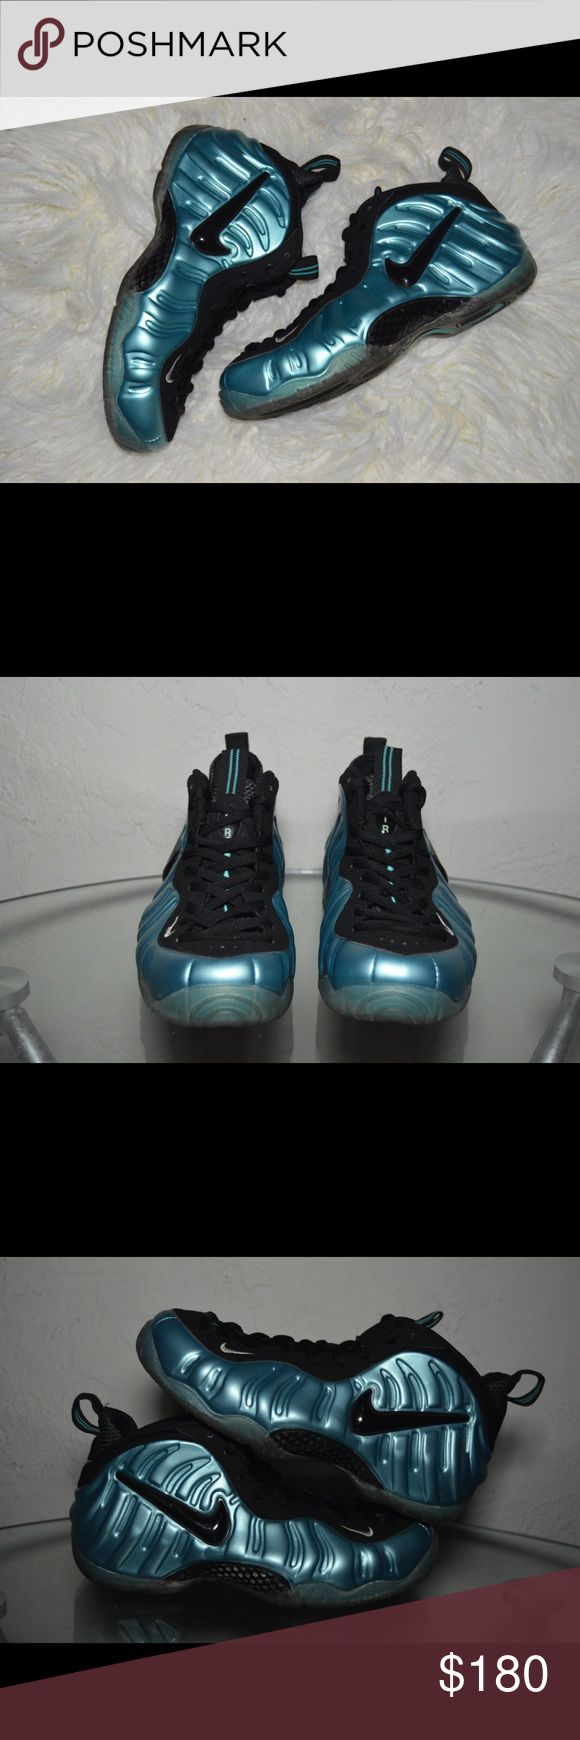 "Nike Air Foamposite Pro ""Electric Blue"" Size 9 100% Authentic  Preowned and in Great condition! Comes in a replacement box! Released in 2011! Gets shipped out after purchase is made! Nike Shoes Sneakers"